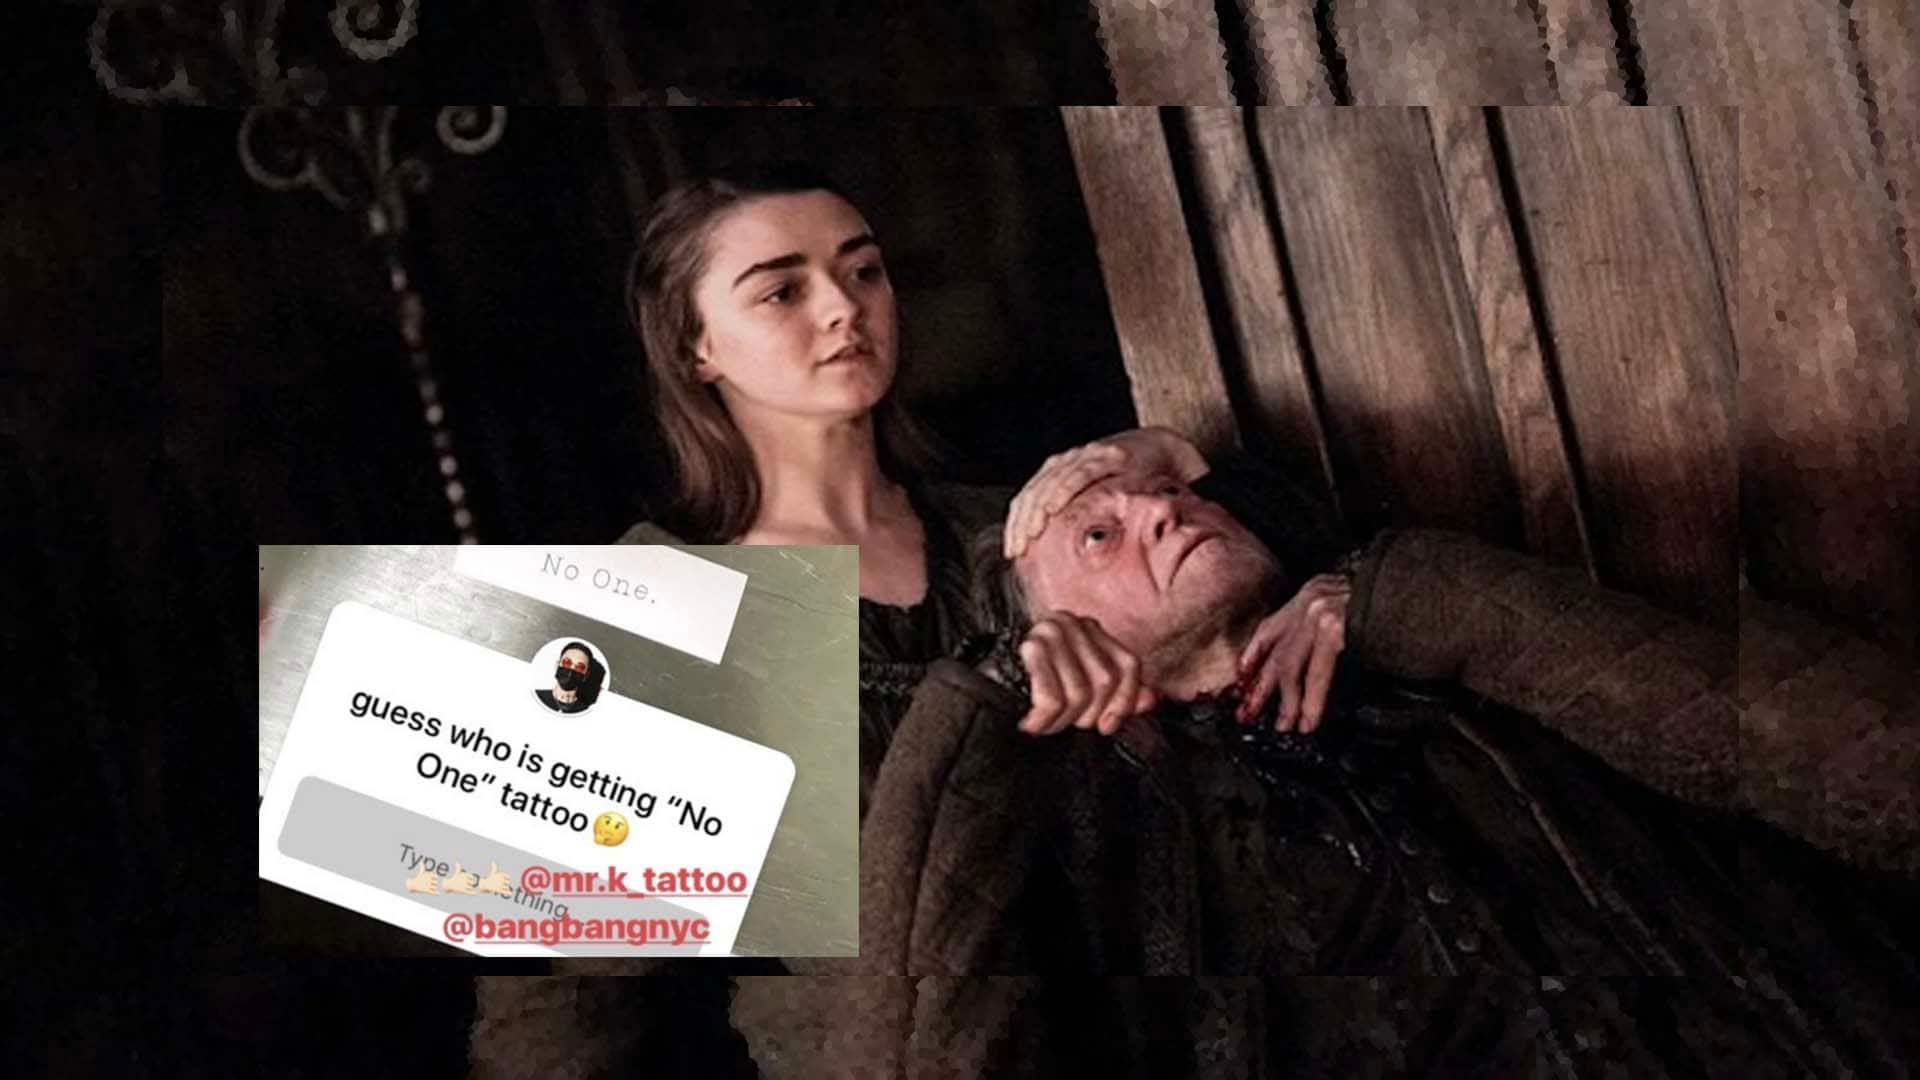 Games of Thrones actor Maisie Williams aka Arya Stark gets a 'No One' tattoo